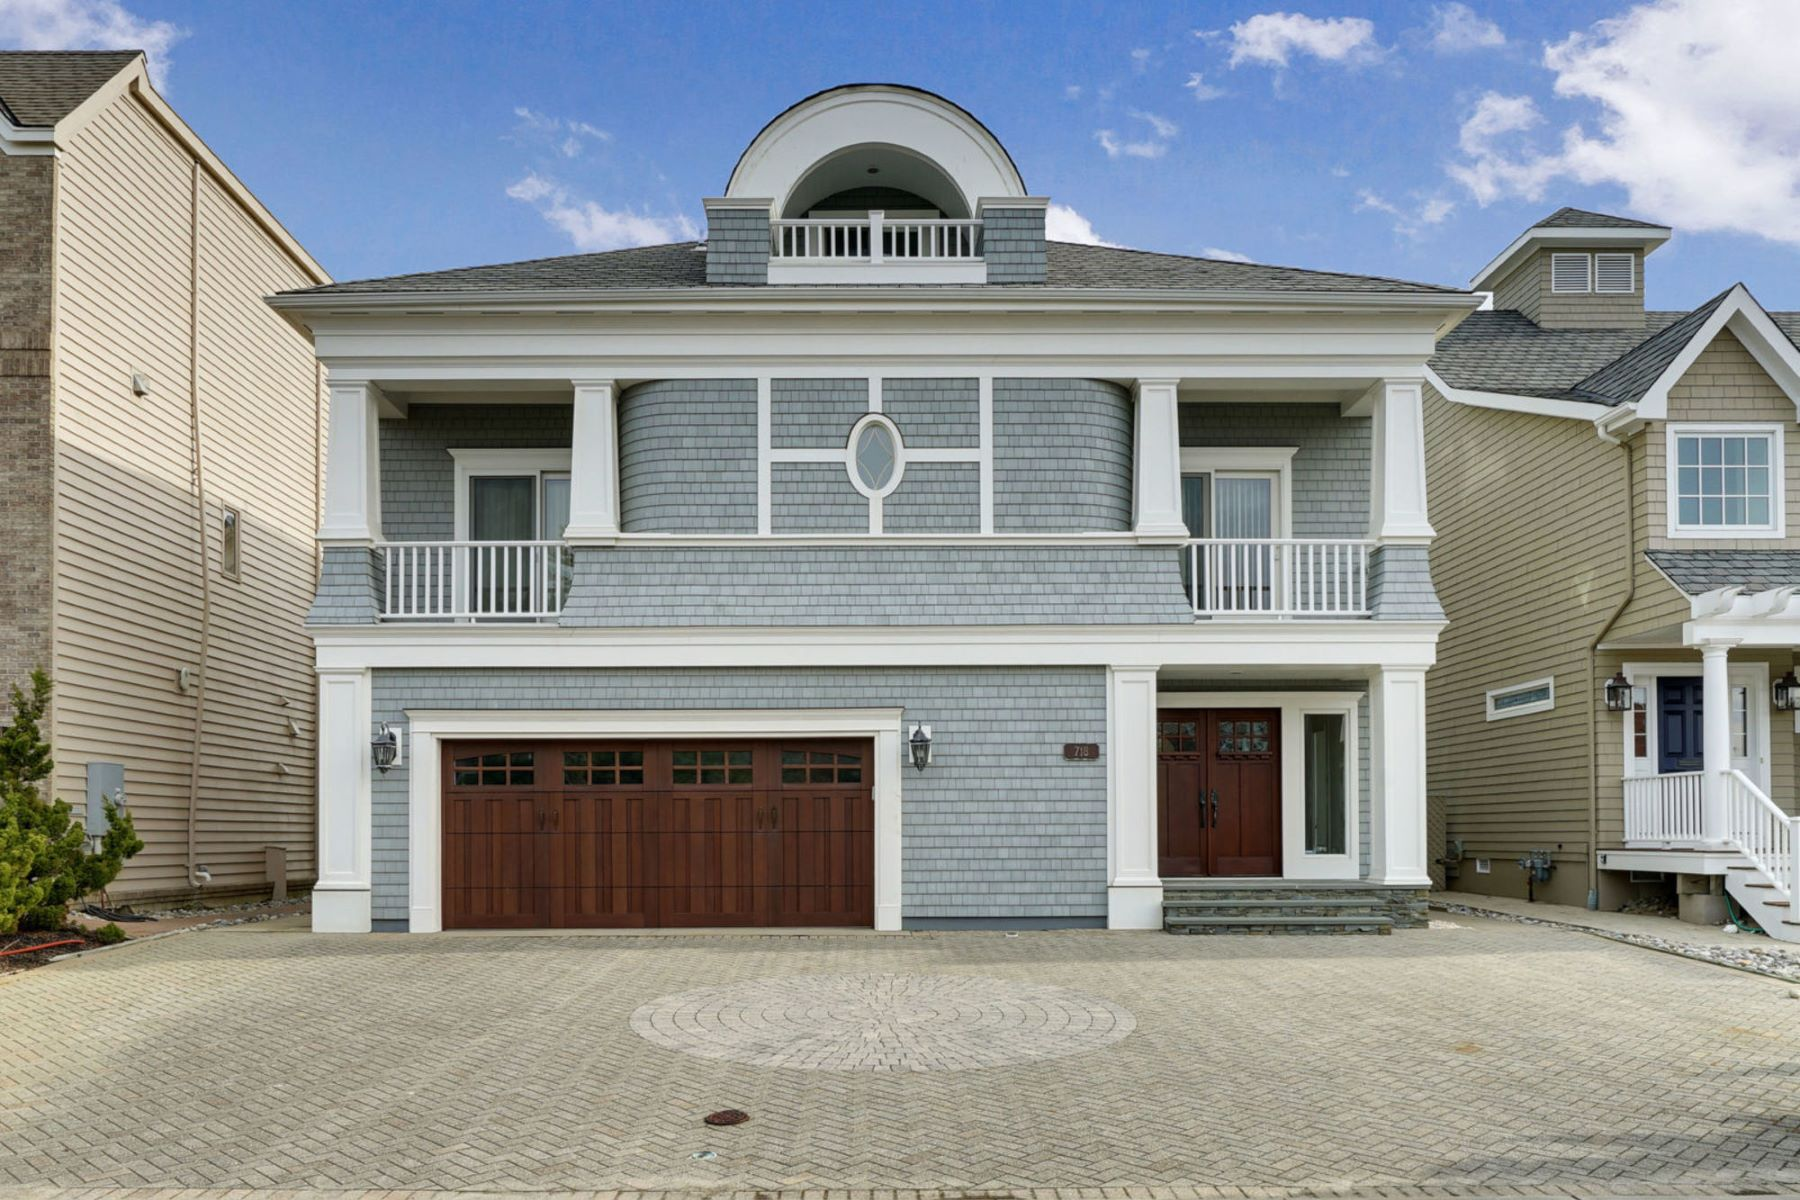 Maison unifamiliale pour l Vente à Directly on the Beach in Sea Girt 718 Morven Terrace, Sea Girt, New Jersey 08750 États-Unis